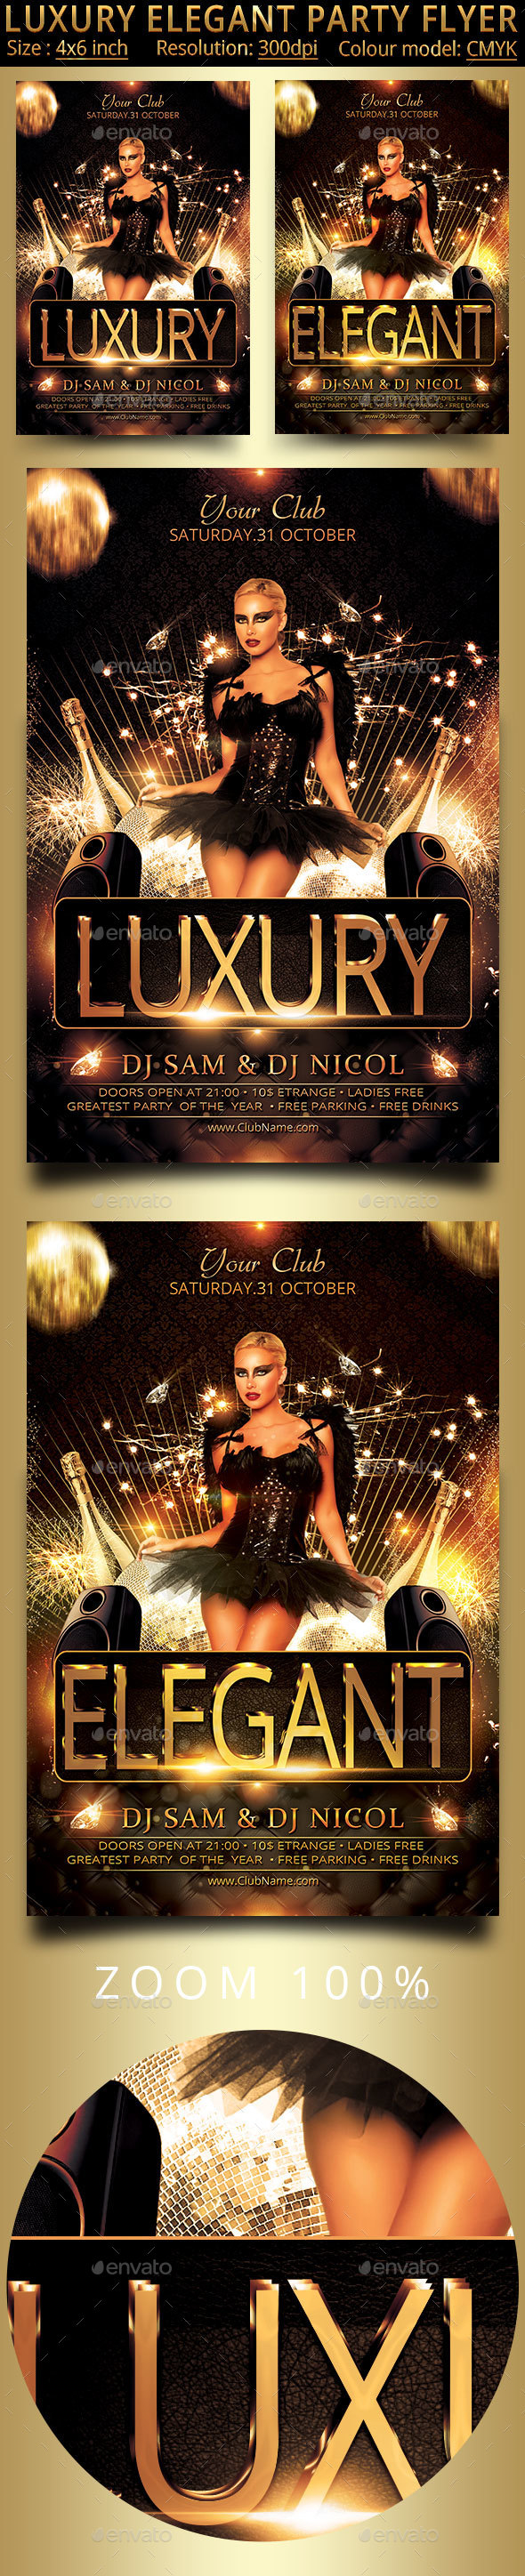 Luxury Elegant Party Flyer - Clubs & Parties Events